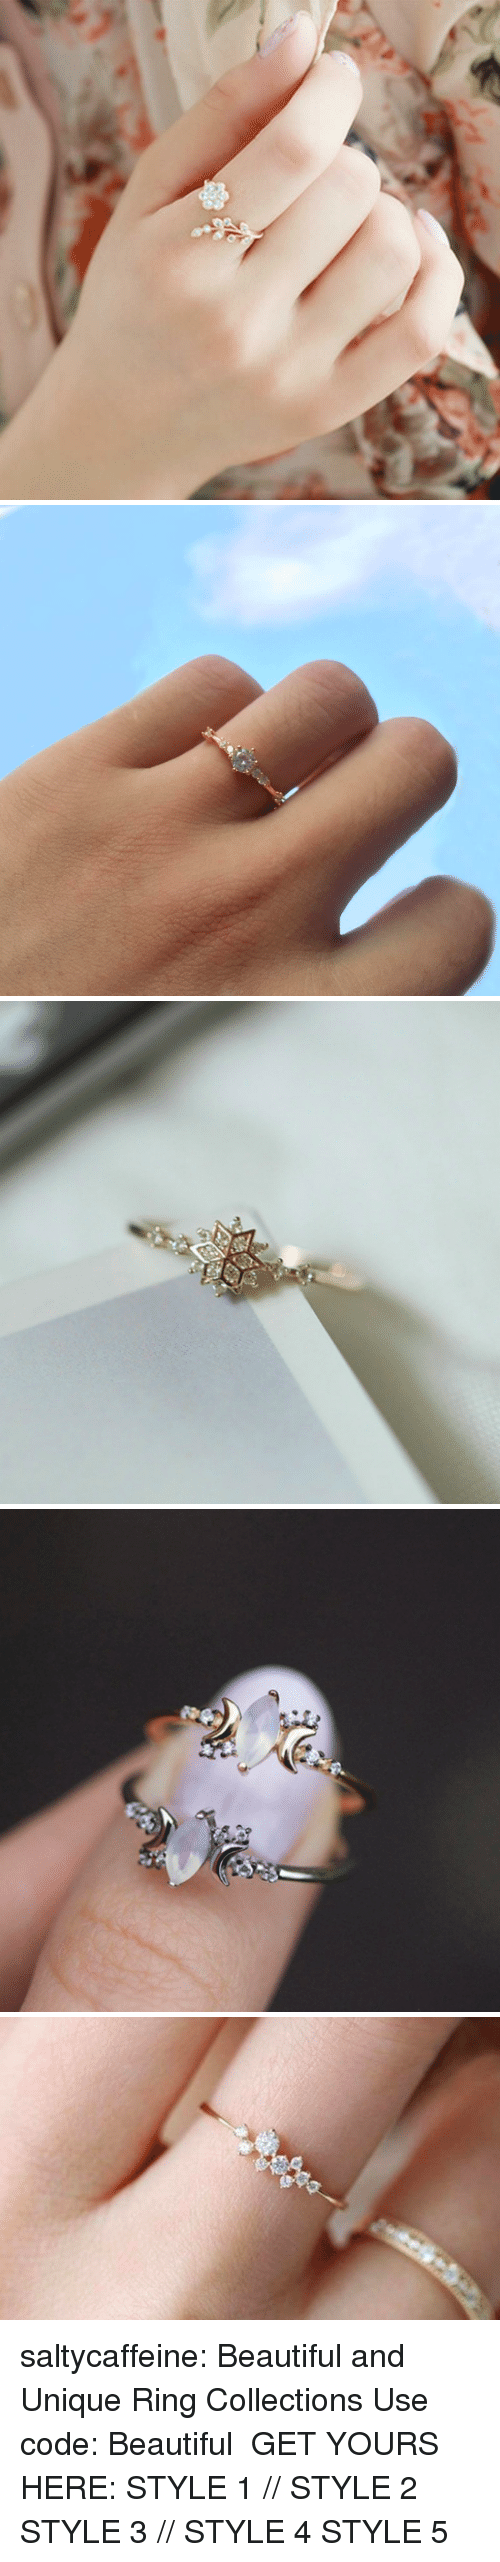 Beautiful, Tumblr, and Weave: saltycaffeine: Beautiful and Unique Ring Collections Use code: Beautiful GET YOURS HERE:  STYLE 1 // STYLE 2  STYLE 3 // STYLE 4  STYLE 5